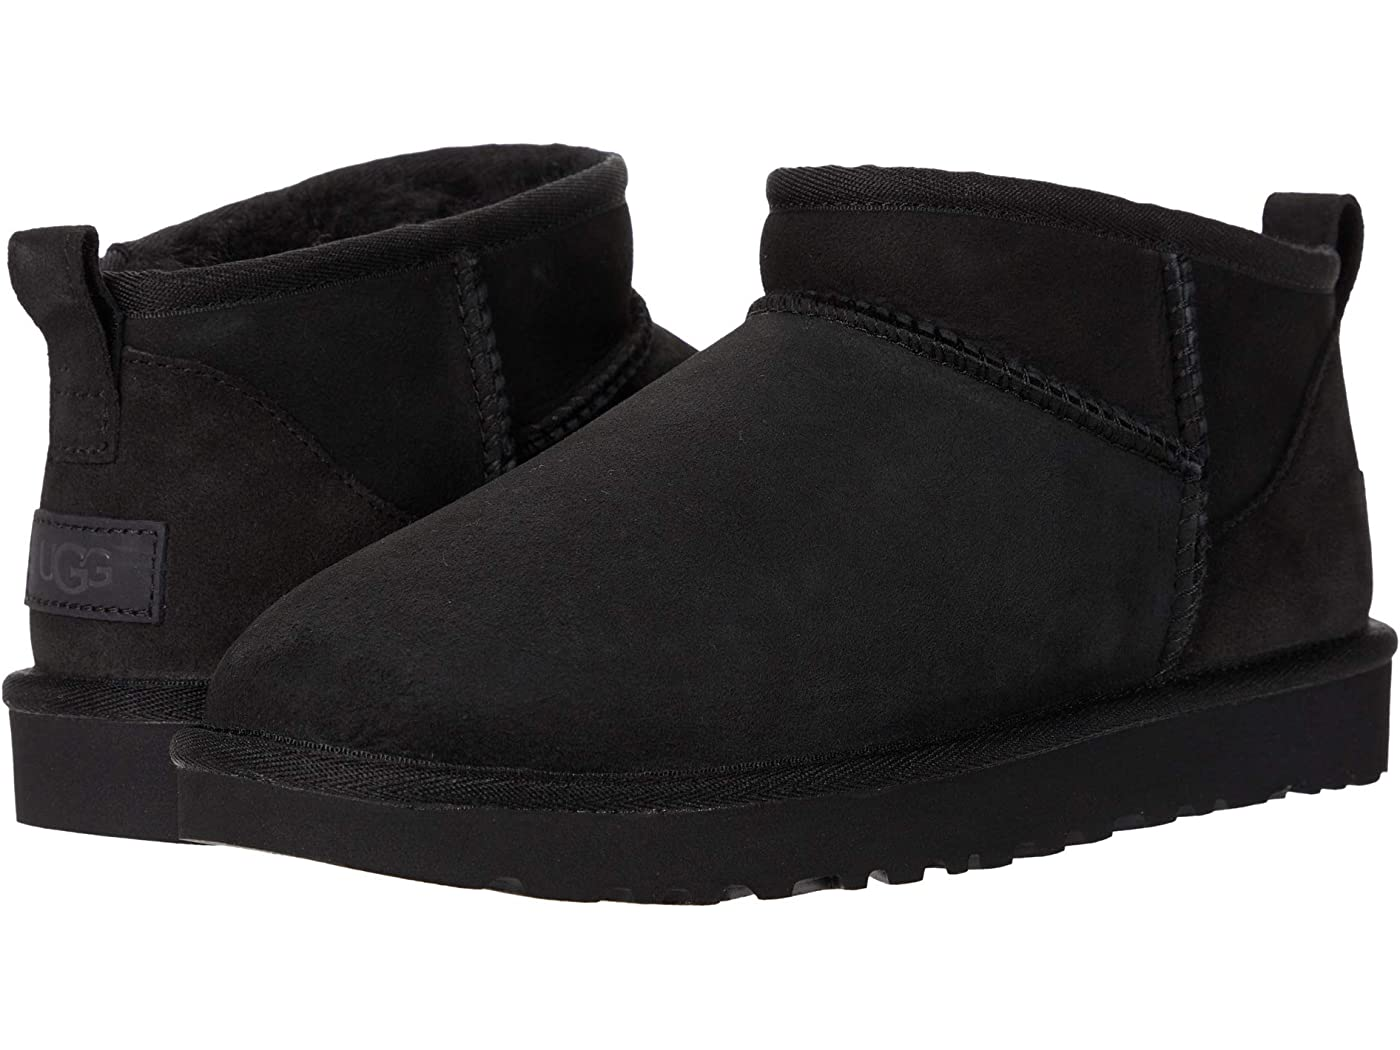 Classic Ultra Mini by Ugg, available on zappos.com for $139.95 Selena Gomez Shoes Exact Product